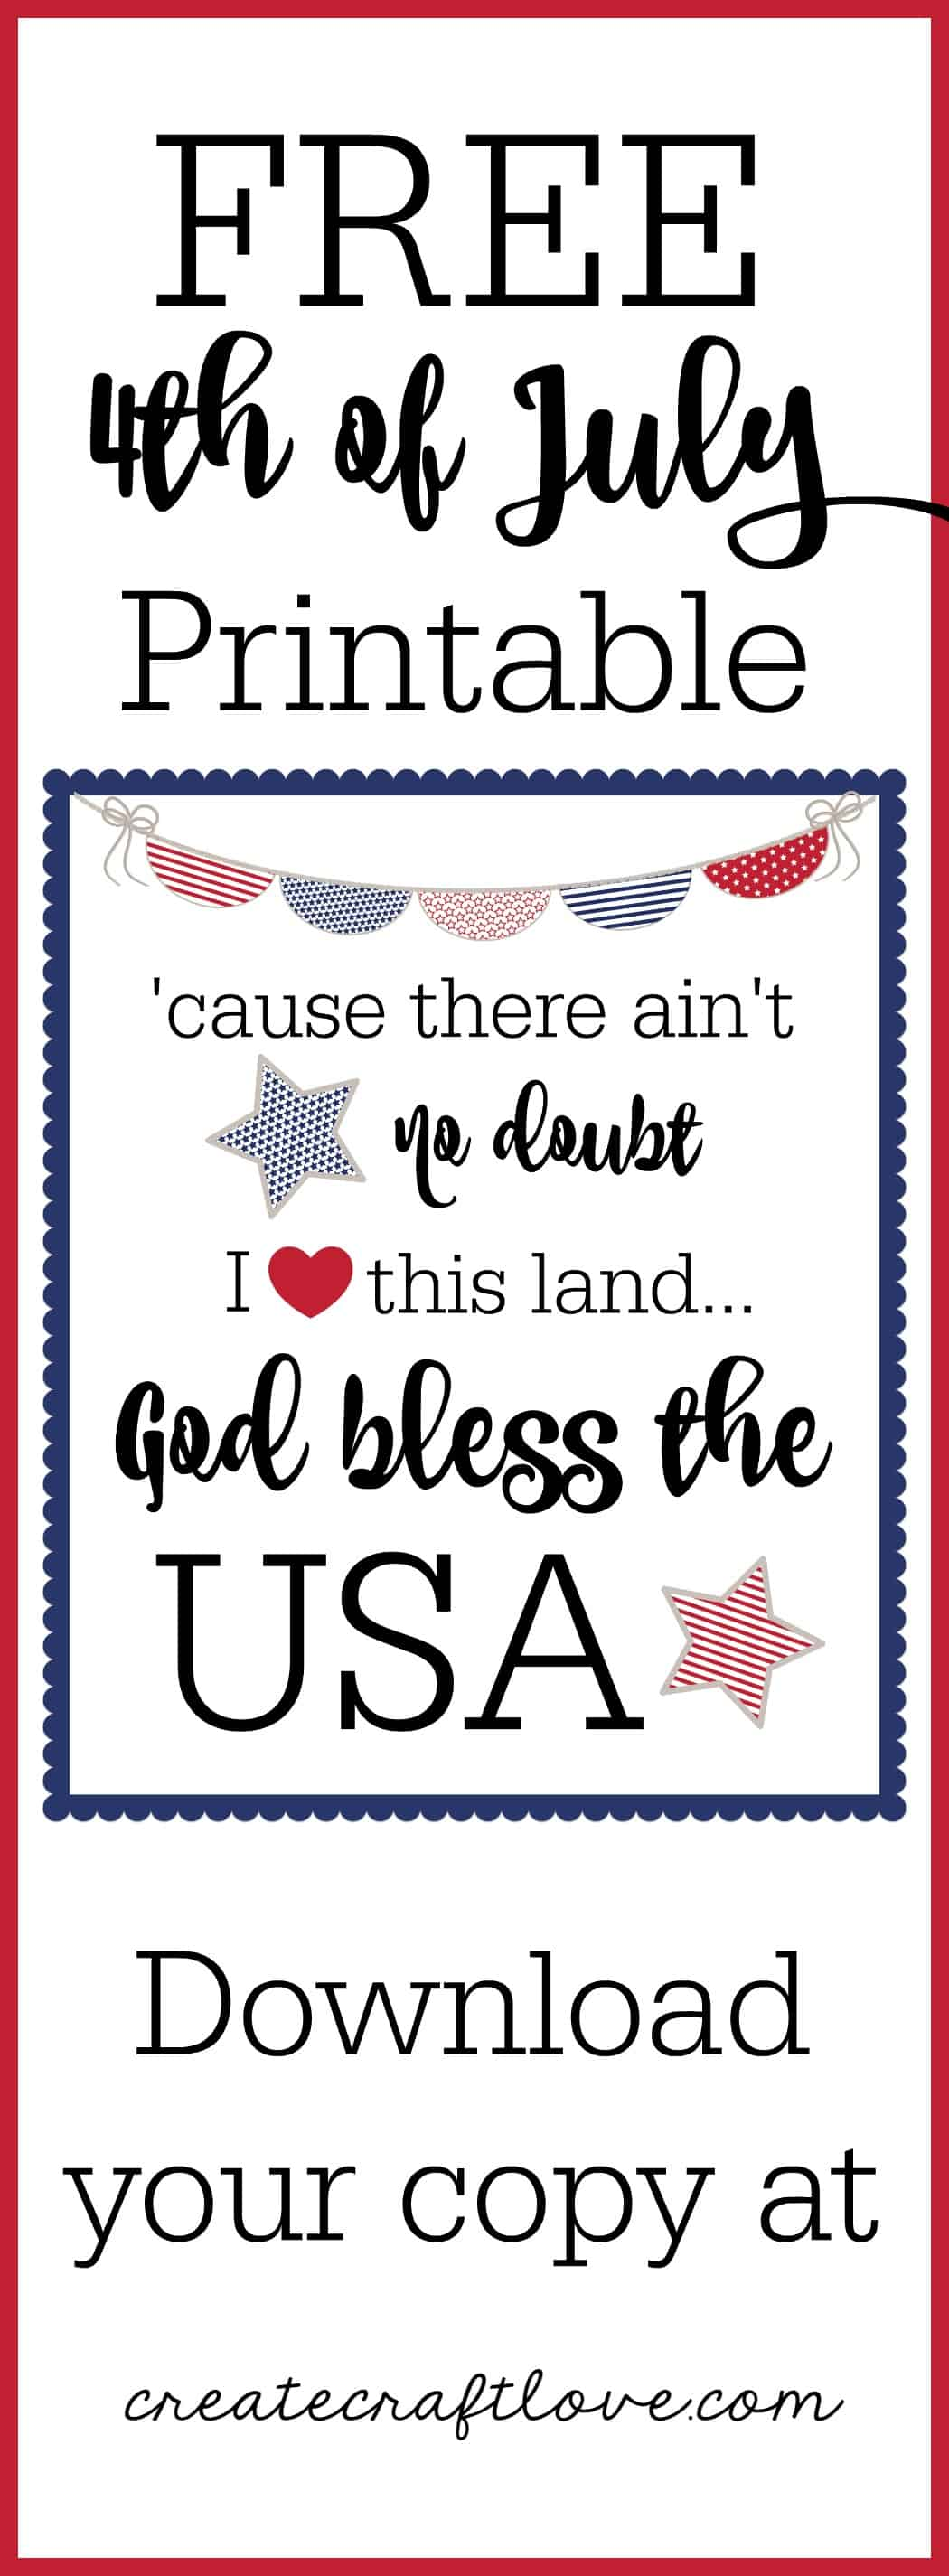 Print out this FREE 4th of July Printable to add a little Americana to your decor!  via createcraftlove.com